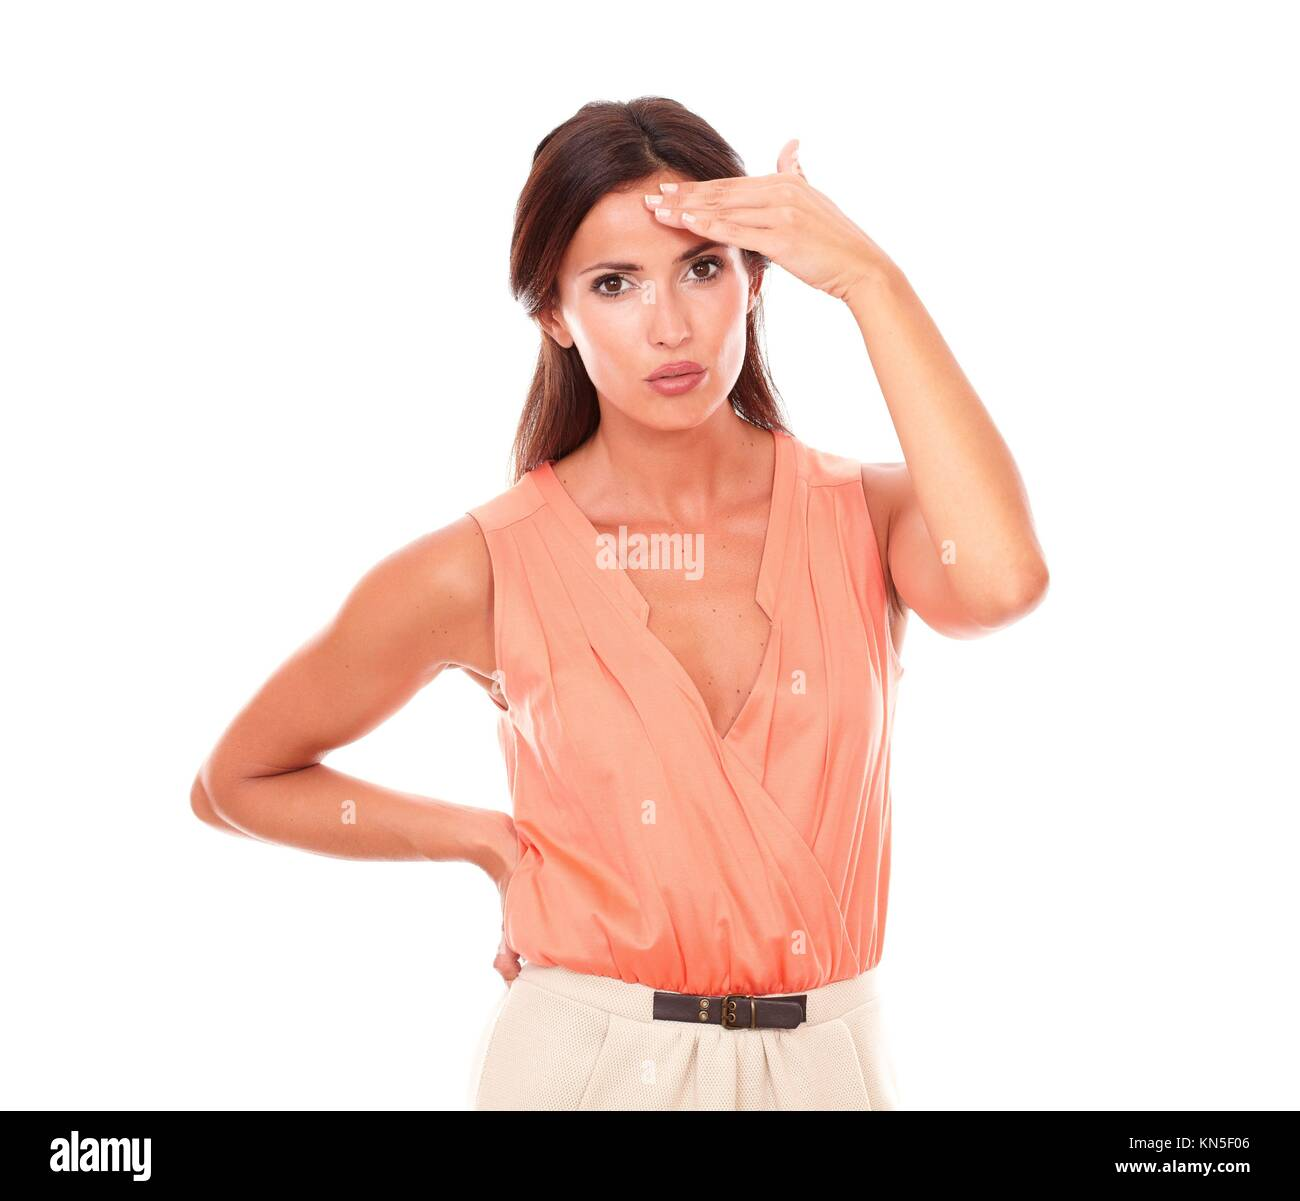 Lovely lady suffering from migraine headache with hand on head and looking at you in white background. - Stock Image